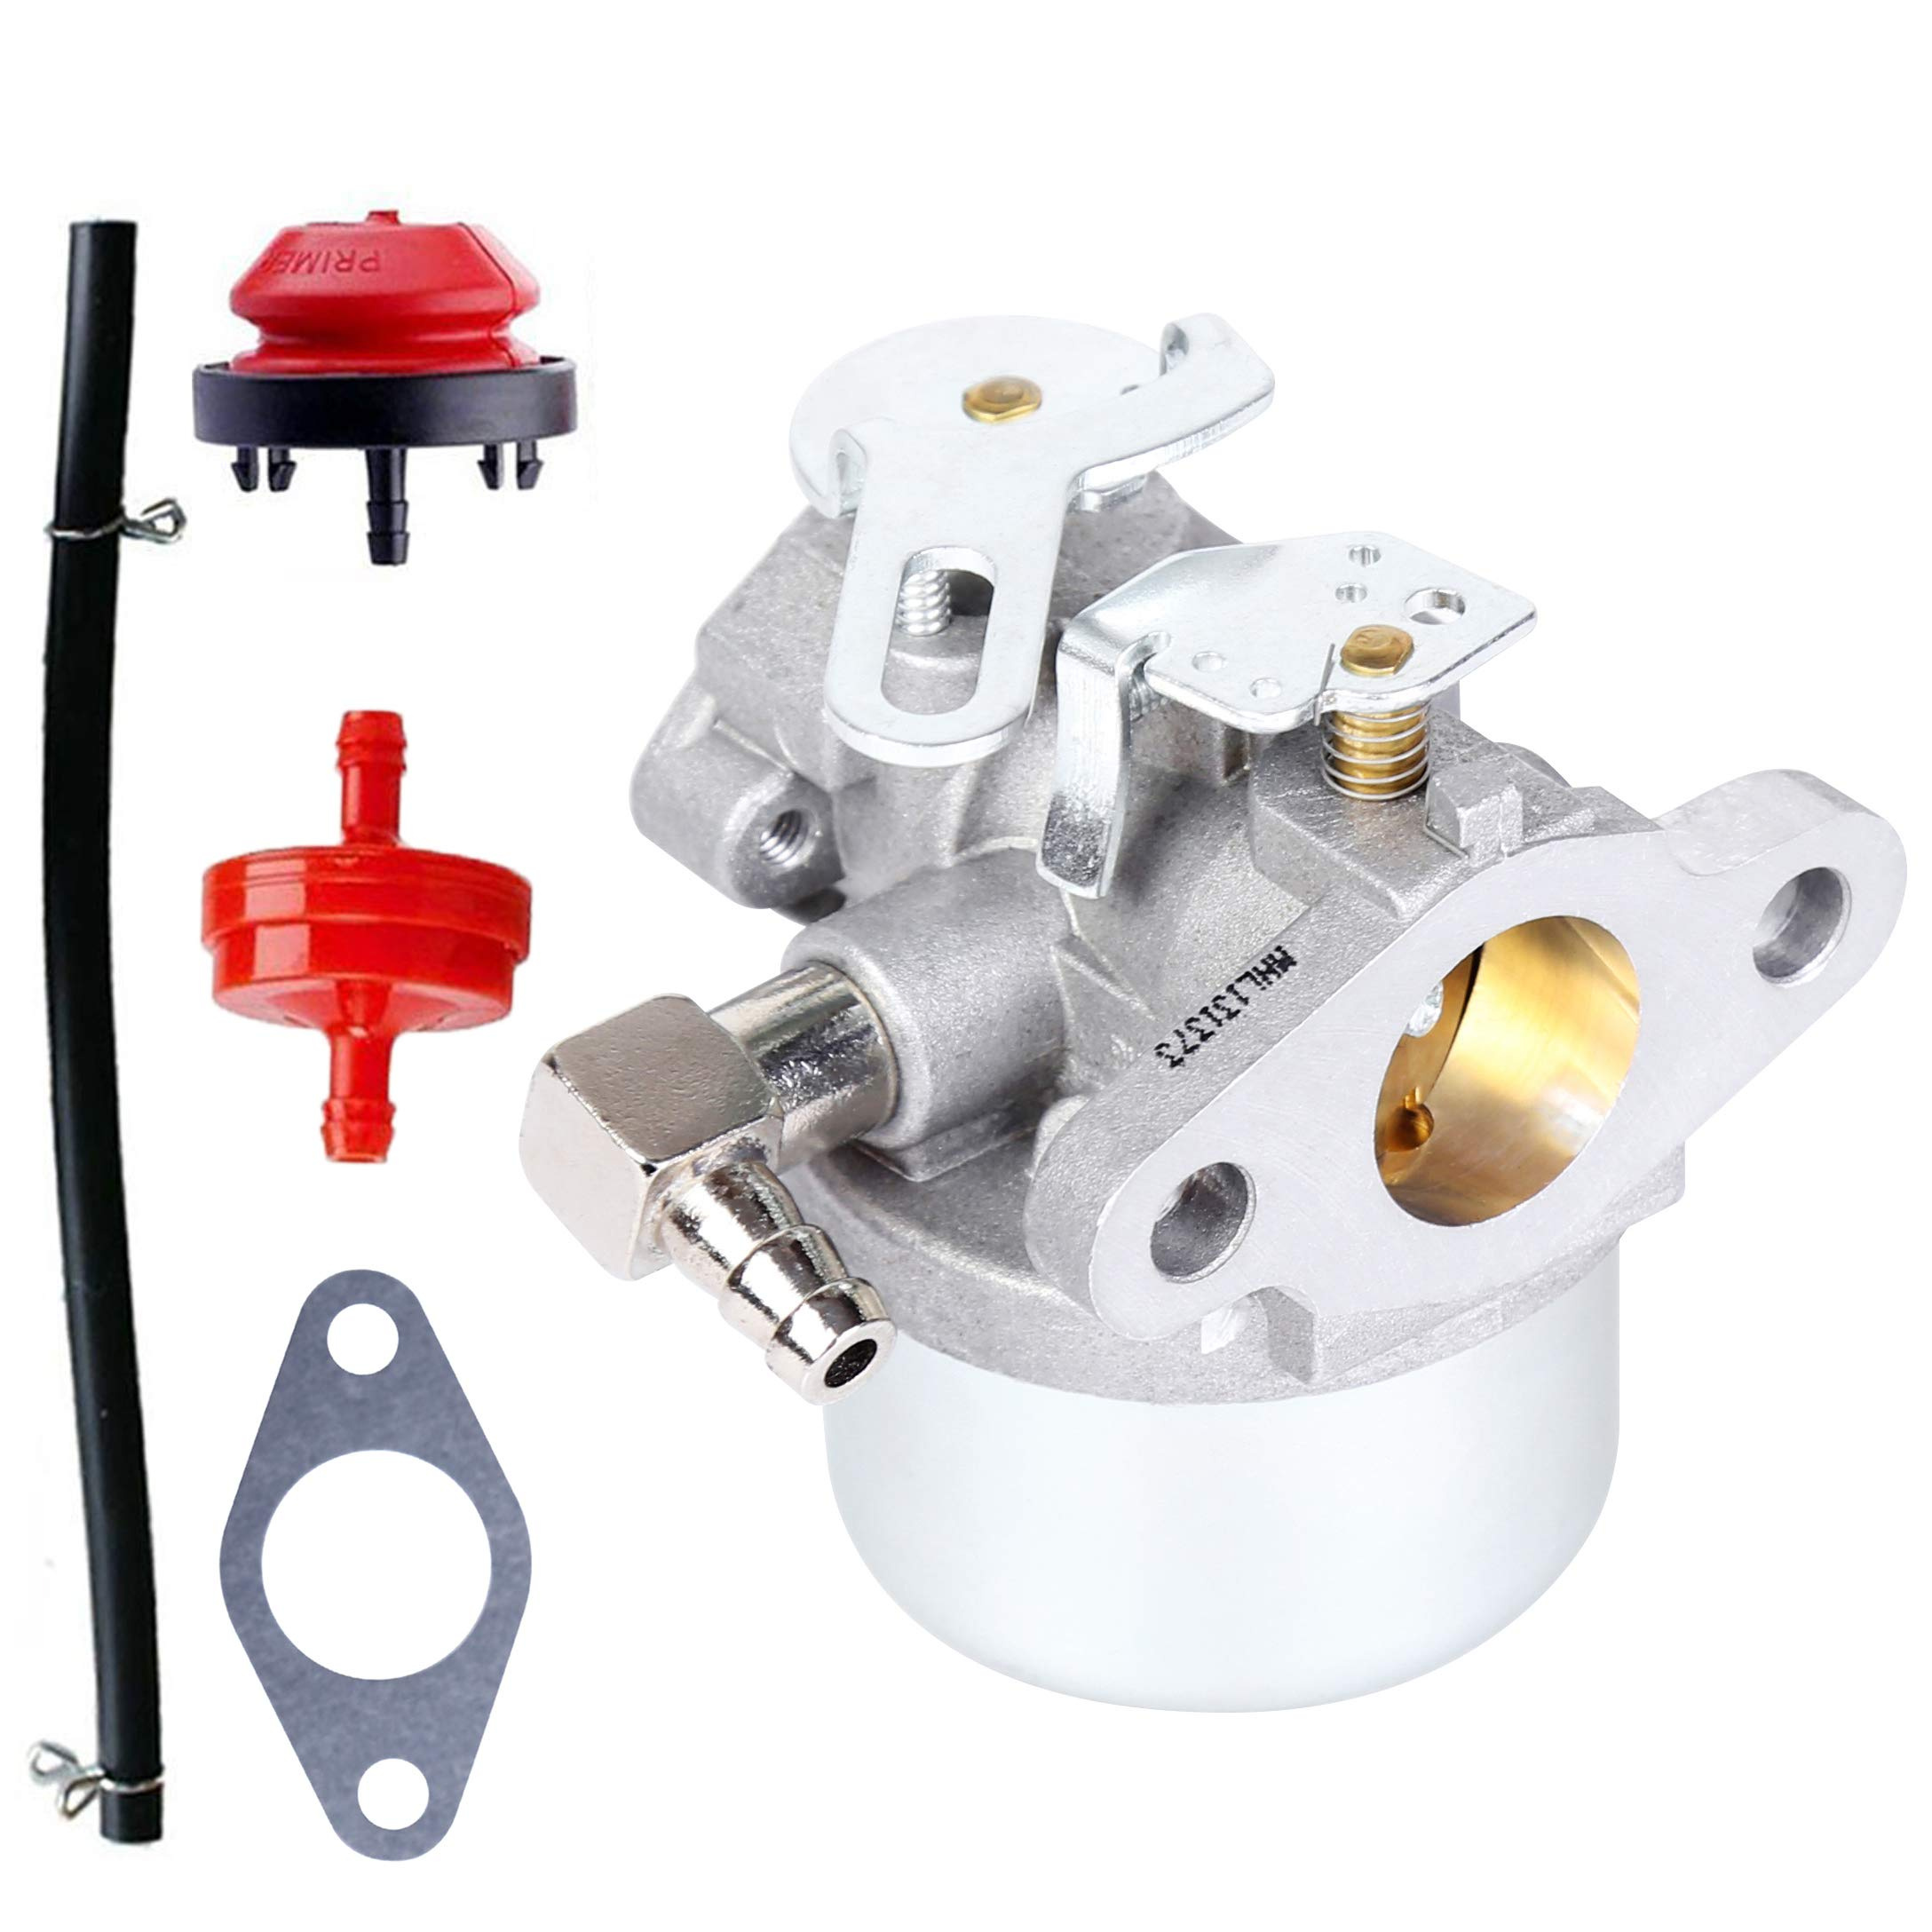 Pro Chaser 932006 640084B 5HP 6HP Tecumseh Engine Carburetor for Toro 524 Snowthrower 38040 Ariens ST504 ST524 Craftsman 22'' 536.886120 Murray 22'' 24'' 624504x4D Snow Blower      by Pro Chaser